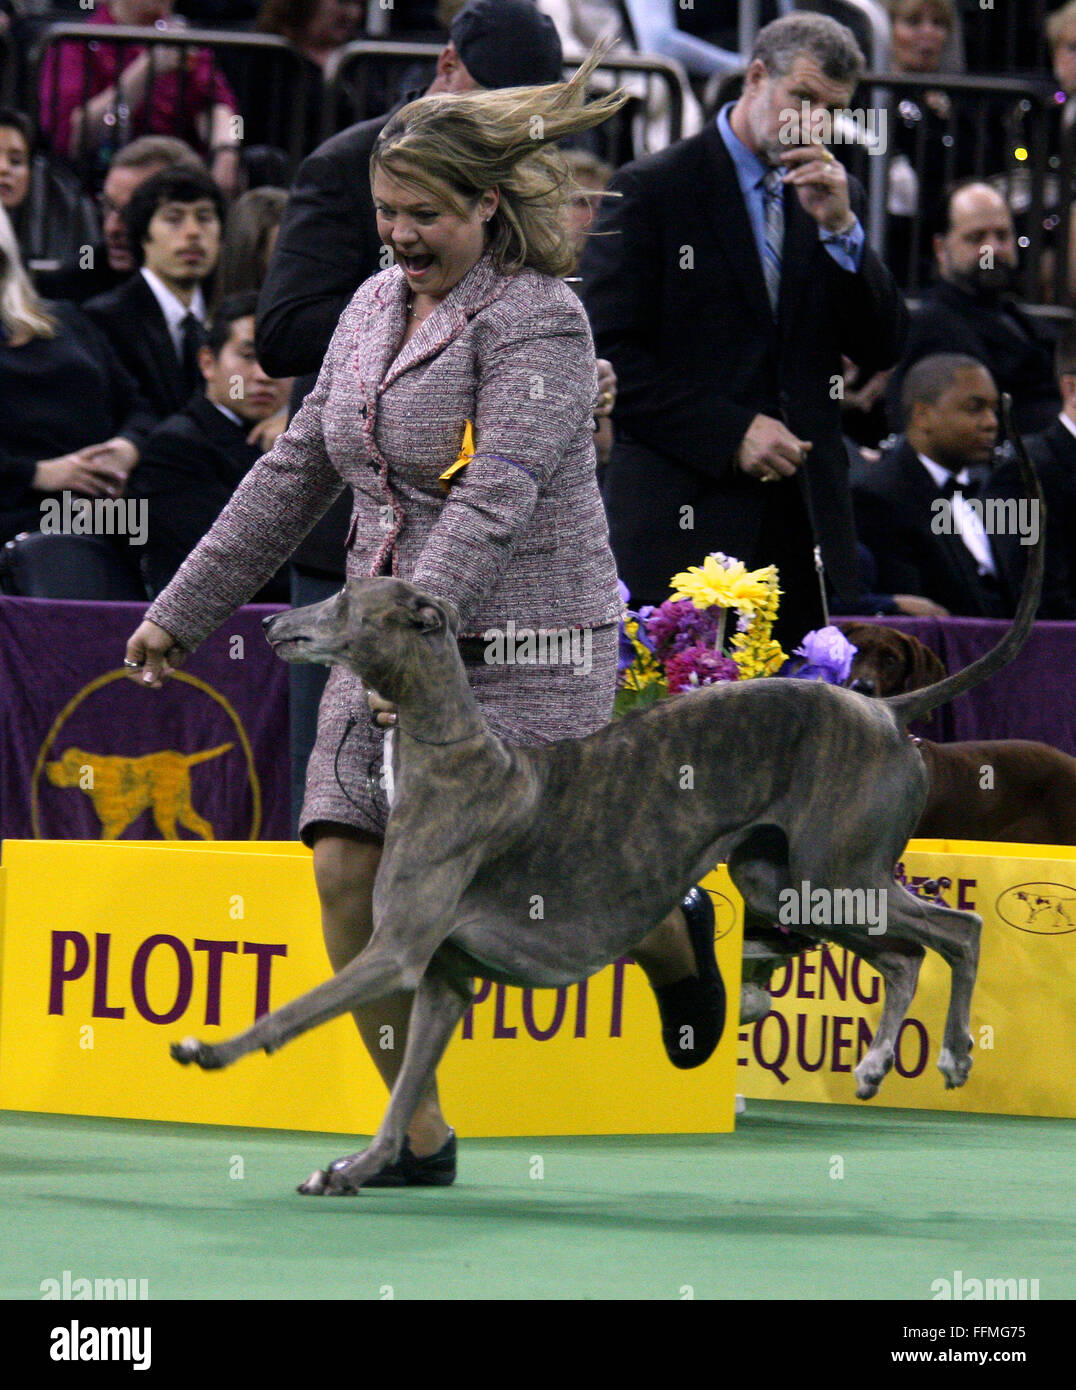 New York, USA. 15th February, 2016. GCH Grandcru Giaconda CGC, a Greyhound in the Hound Group Competition during - Stock Image